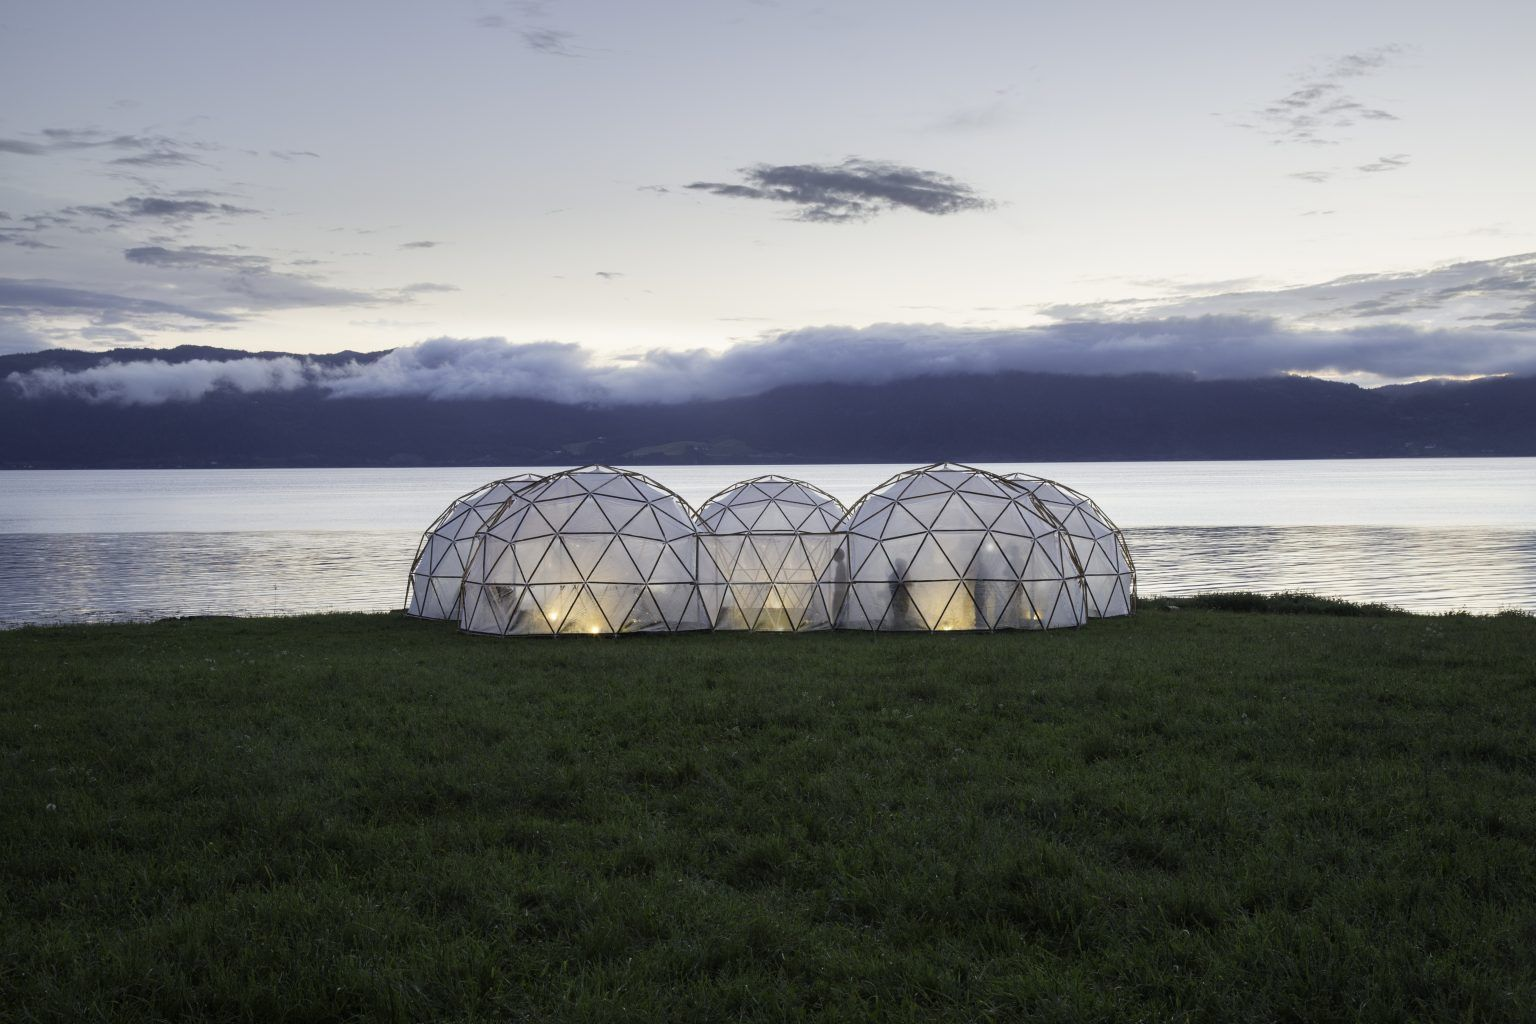 A photo of the connected pollution pods with the sea and sky behind them